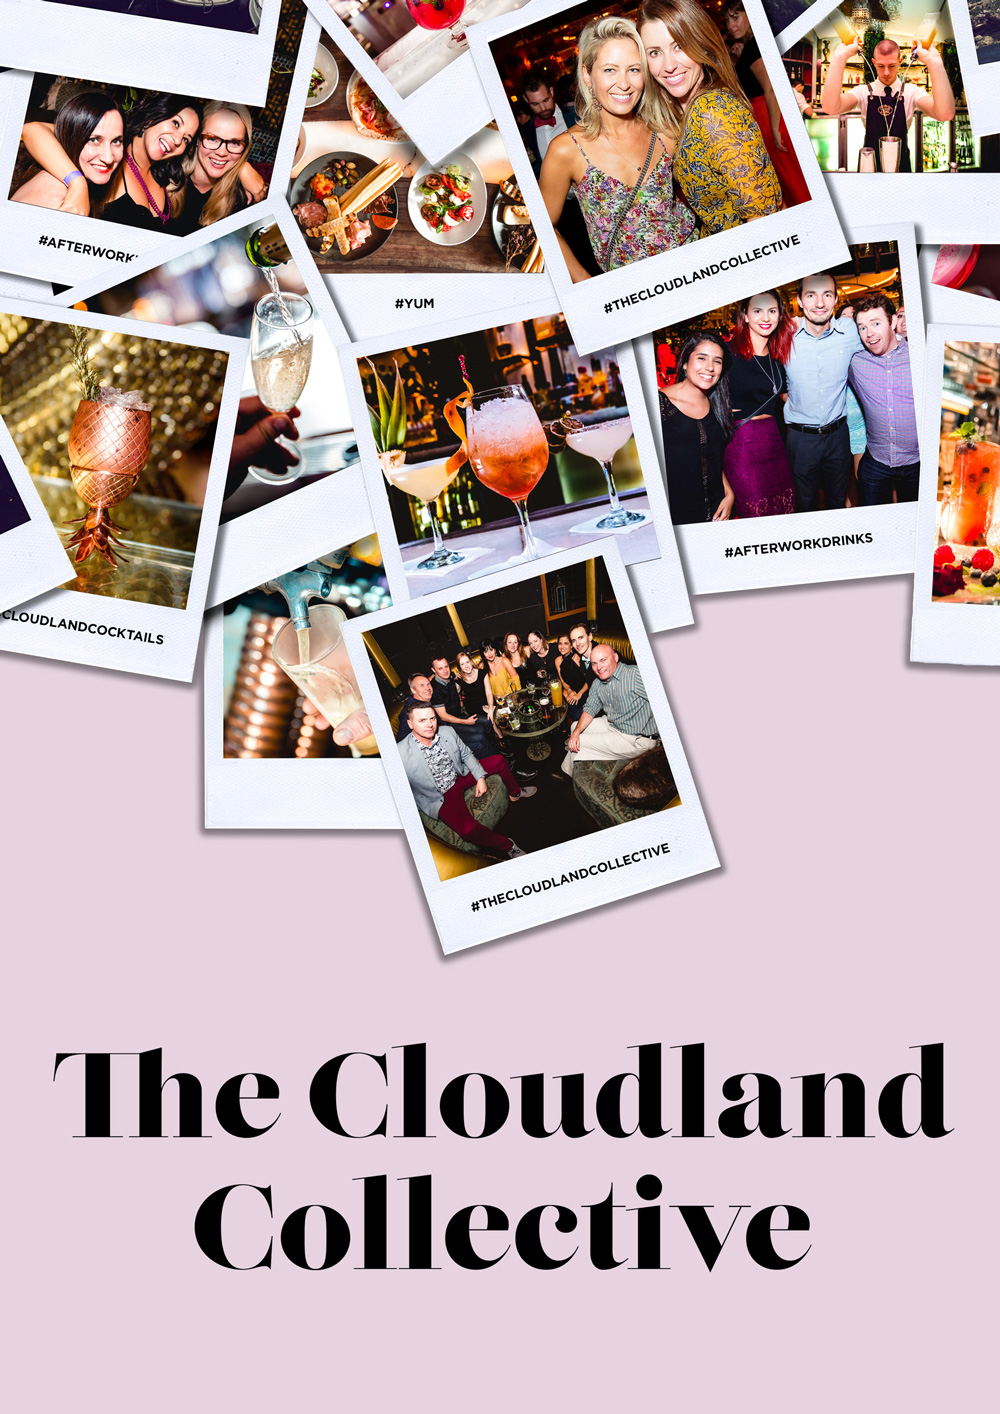 Cloudland Collective Friday